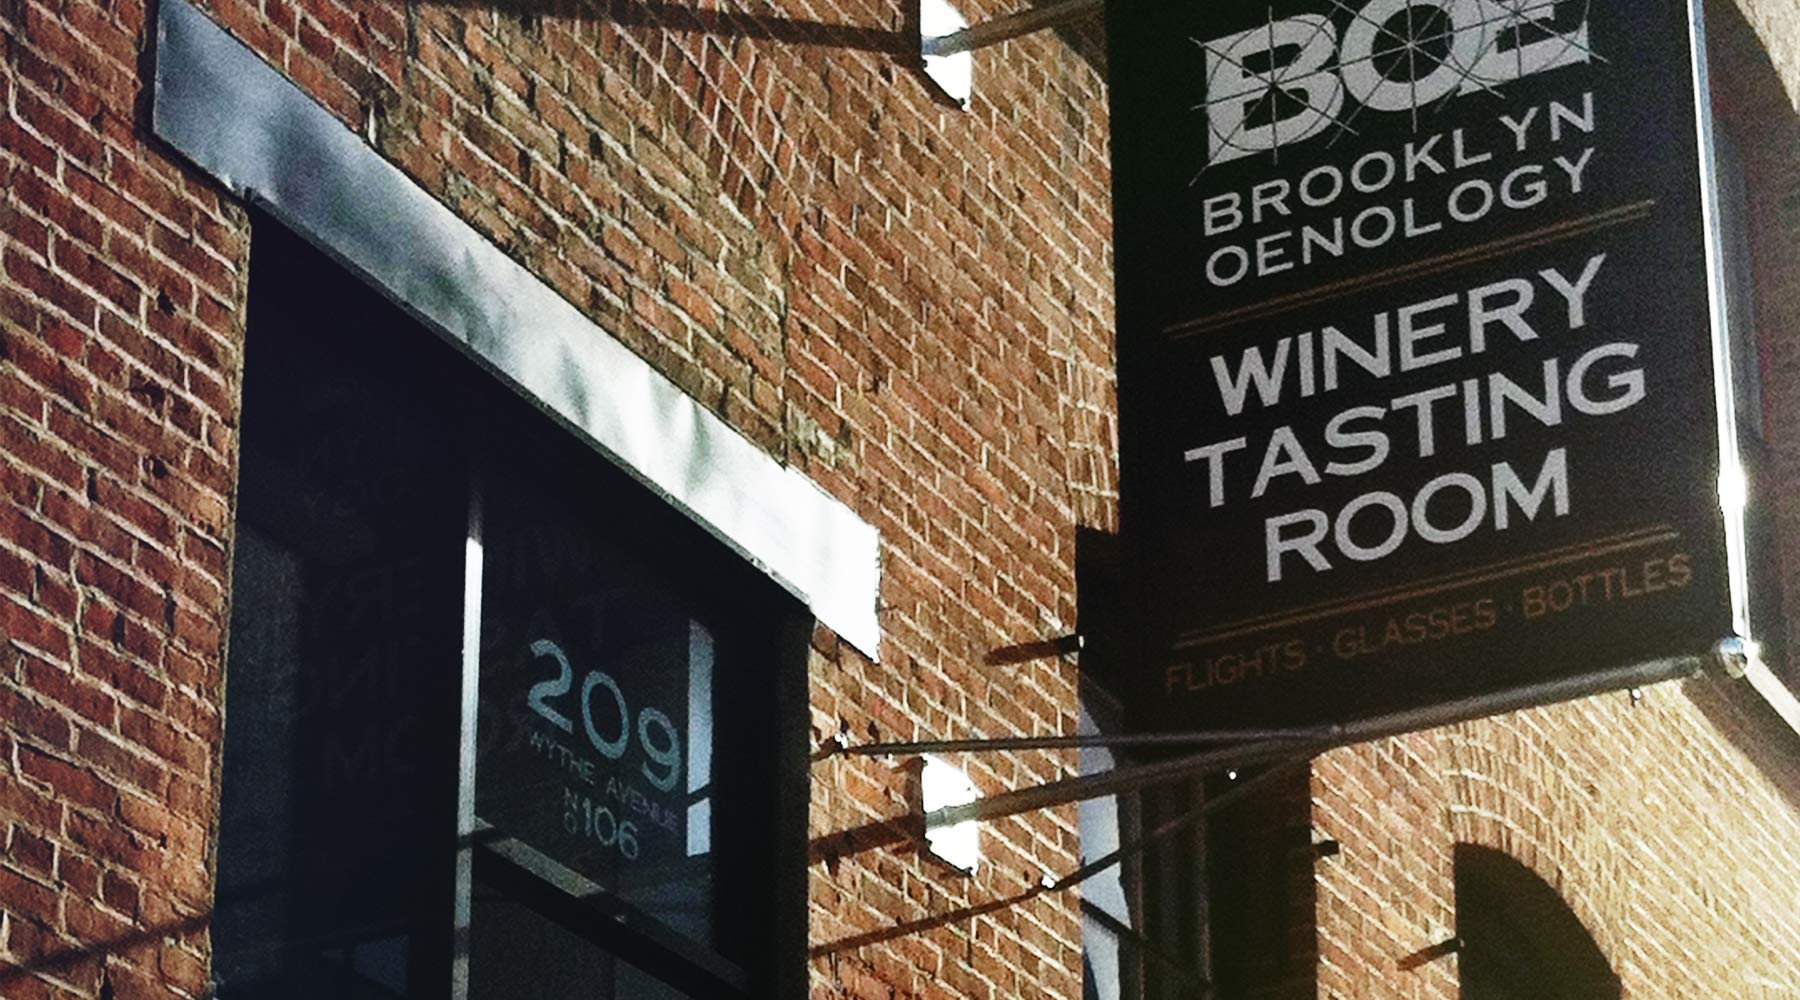 Brooklyn Oenology | Just Wine